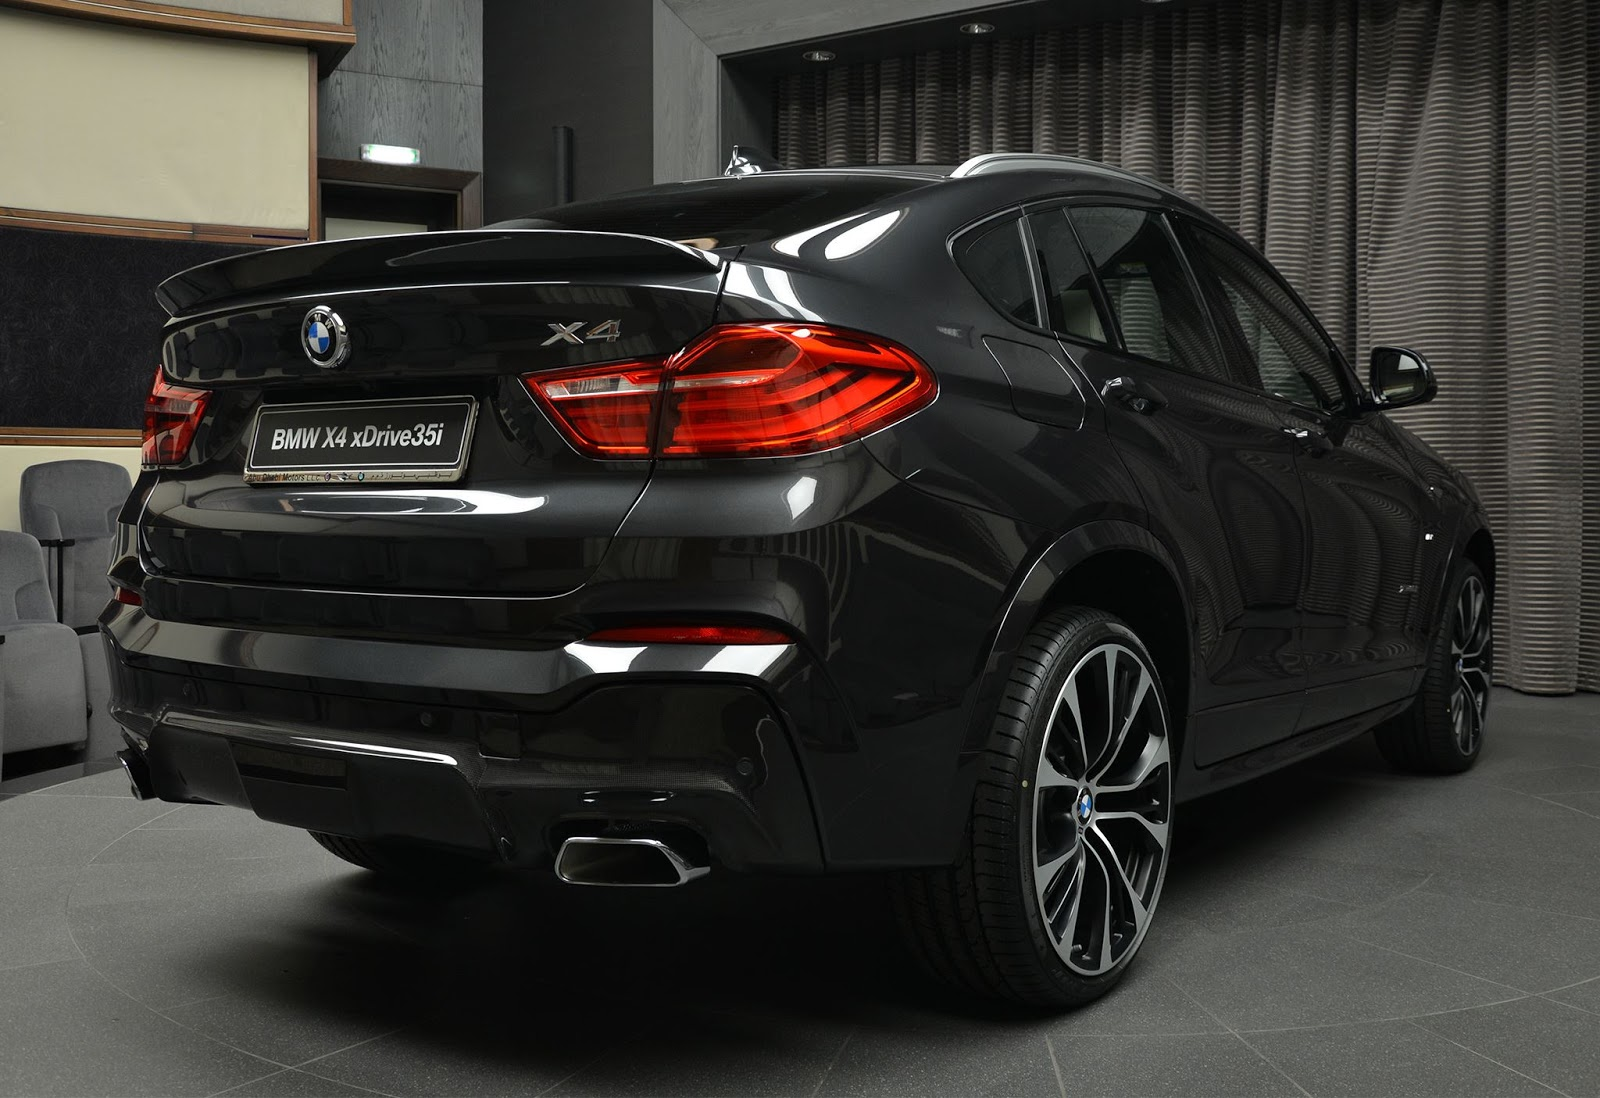 Bmw X4 Looks The Goods With M Performance And 3d Design